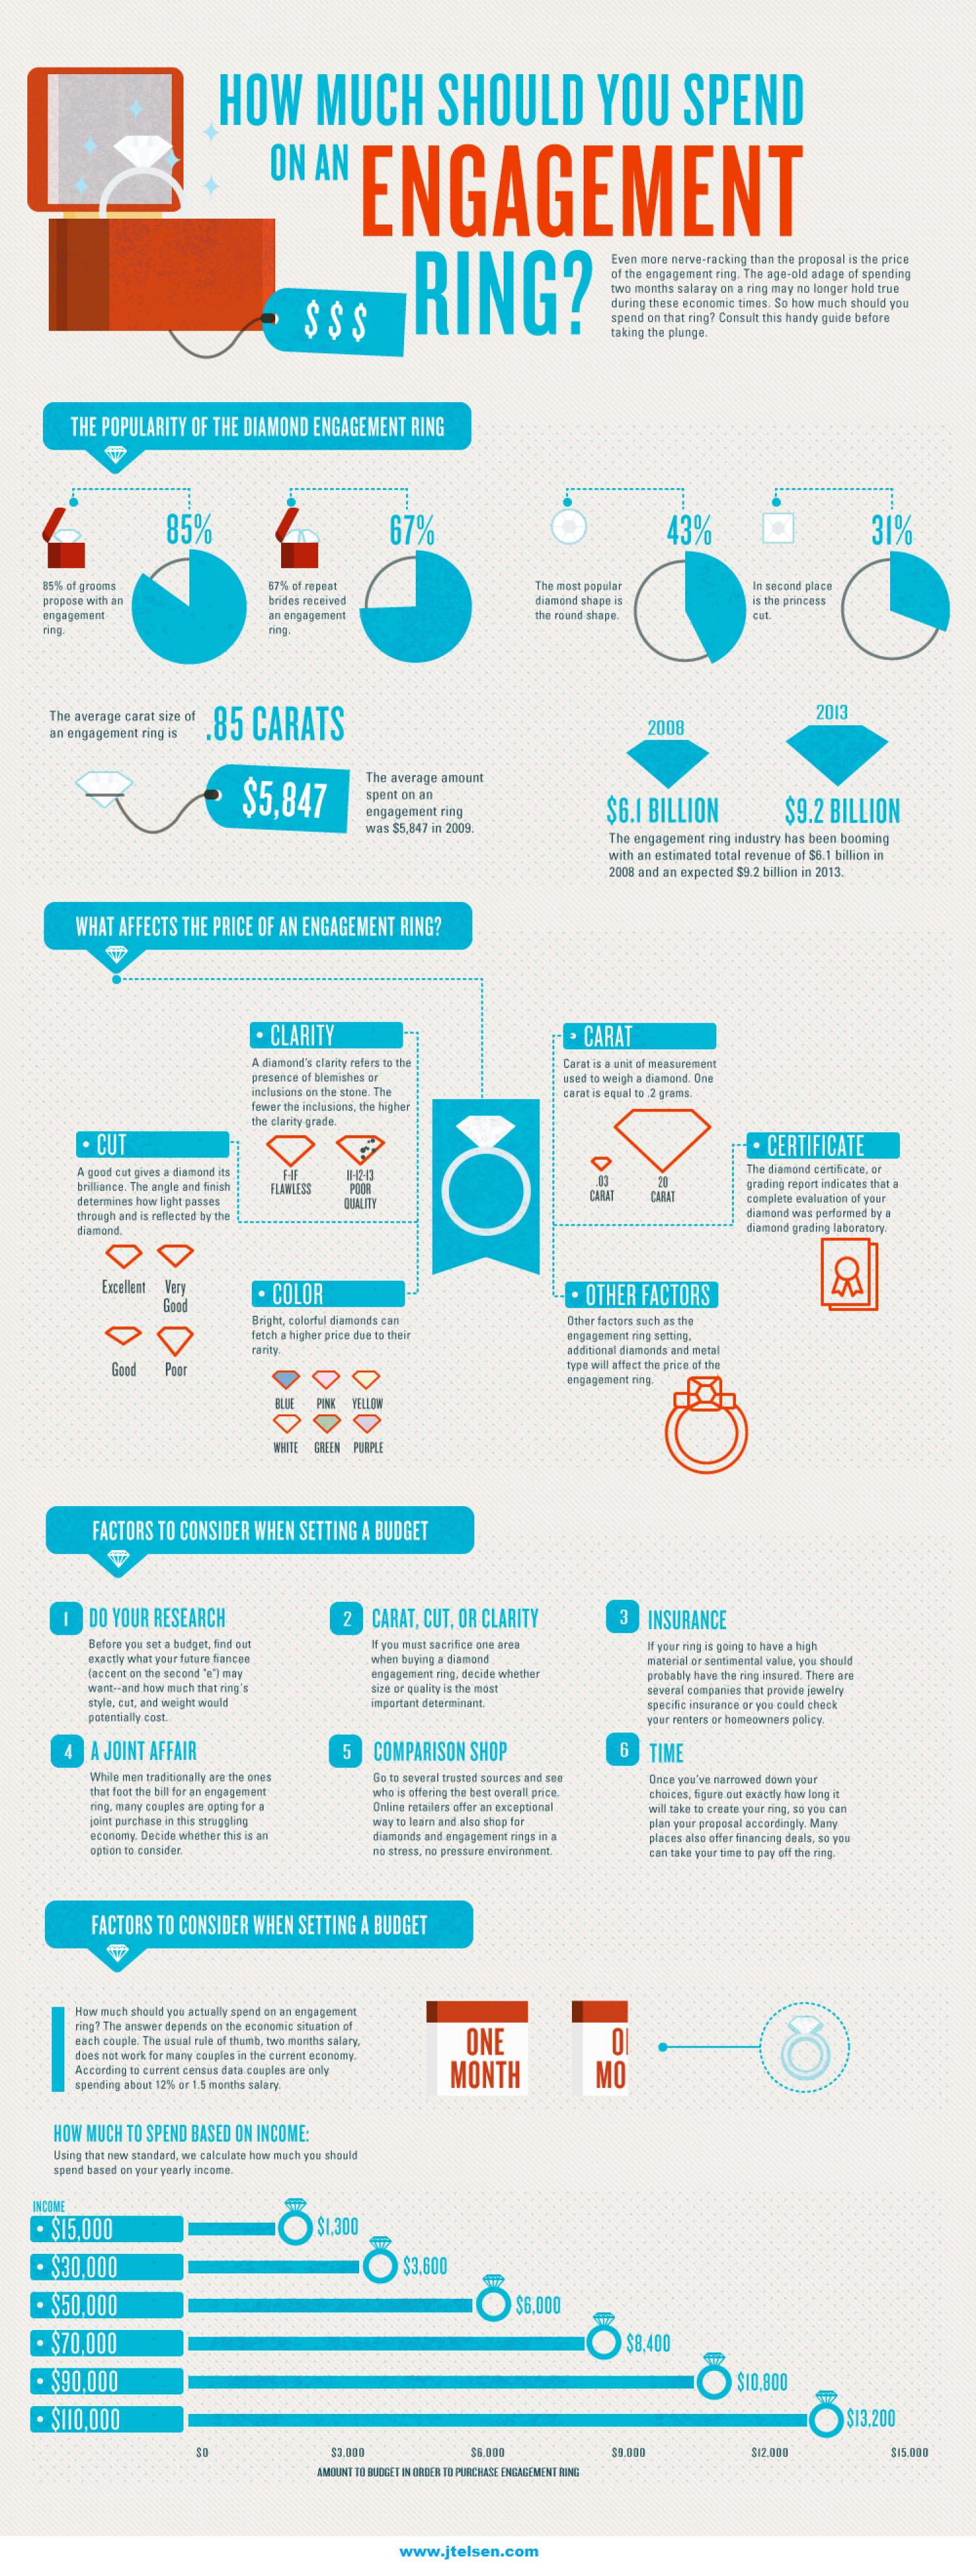 How Much Should You Spend On A Diamond Engagement Ring? Infographic